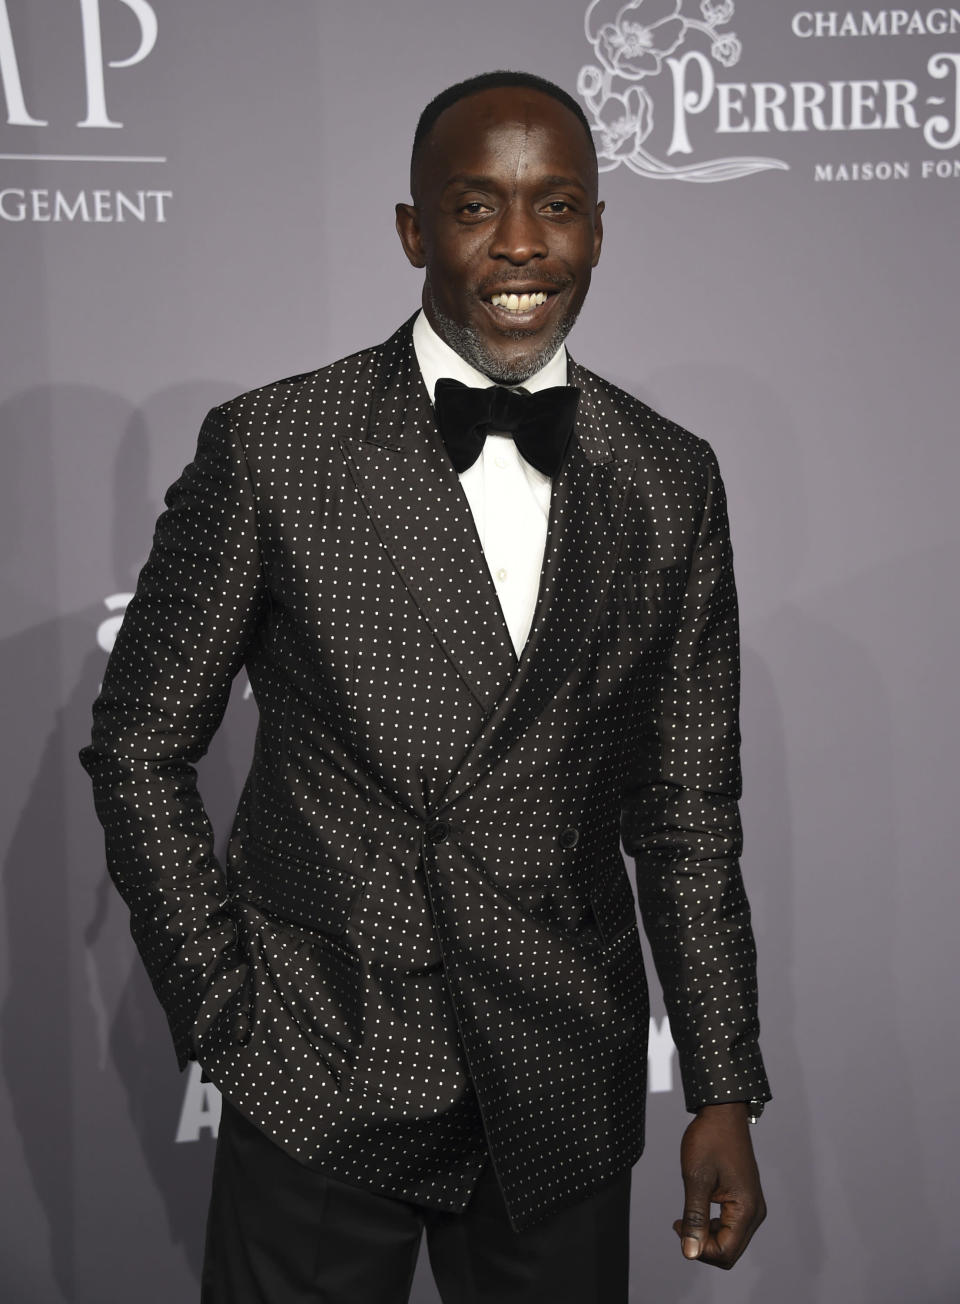 """FILE - In this Wednesday, Feb. 7, 2018, file photo, Michael K. Williams attends the Fashion Week amfAR Gala New York at Cipriani Wall Street in New York. Williams, who played the beloved character Omar Little on """"The Wire,"""" has died. New York City police say Williams was found dead Monday, Sept. 6, 2021, at his apartment in Brooklyn. He was 54. (Photo by Evan Agostini/Invision/AP, File)"""